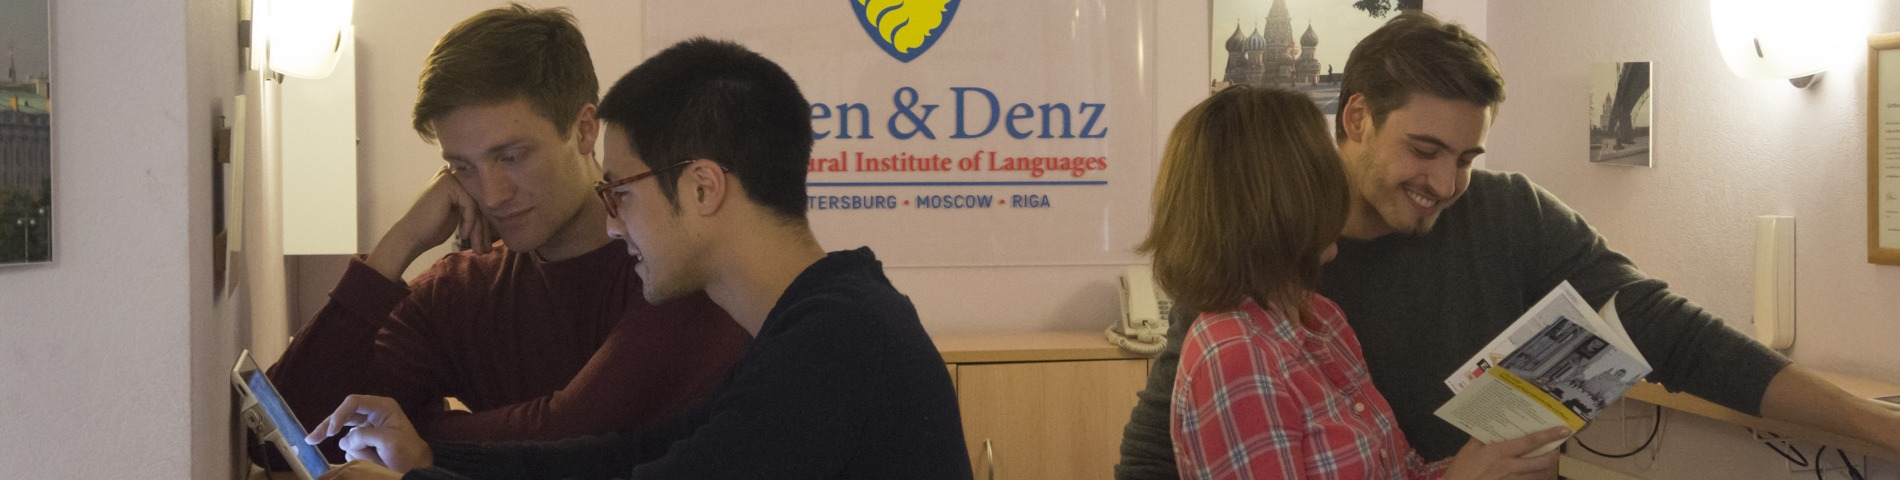 Liden & Denz Language Centre kuva 14